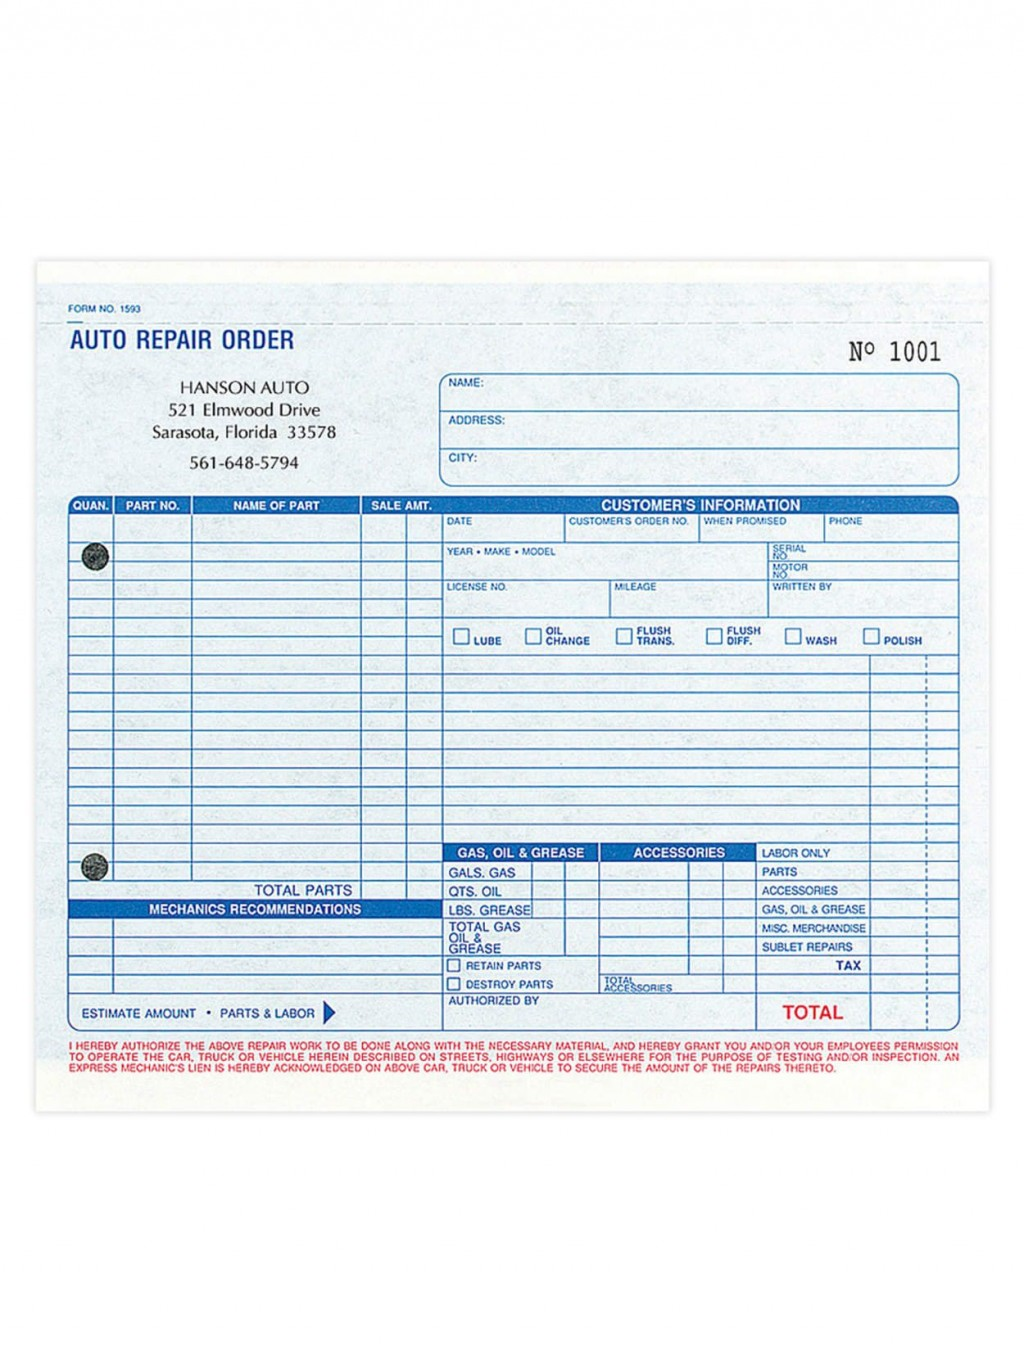 004 Amazing Auto Repair Work Order Template Excel Free Example Large